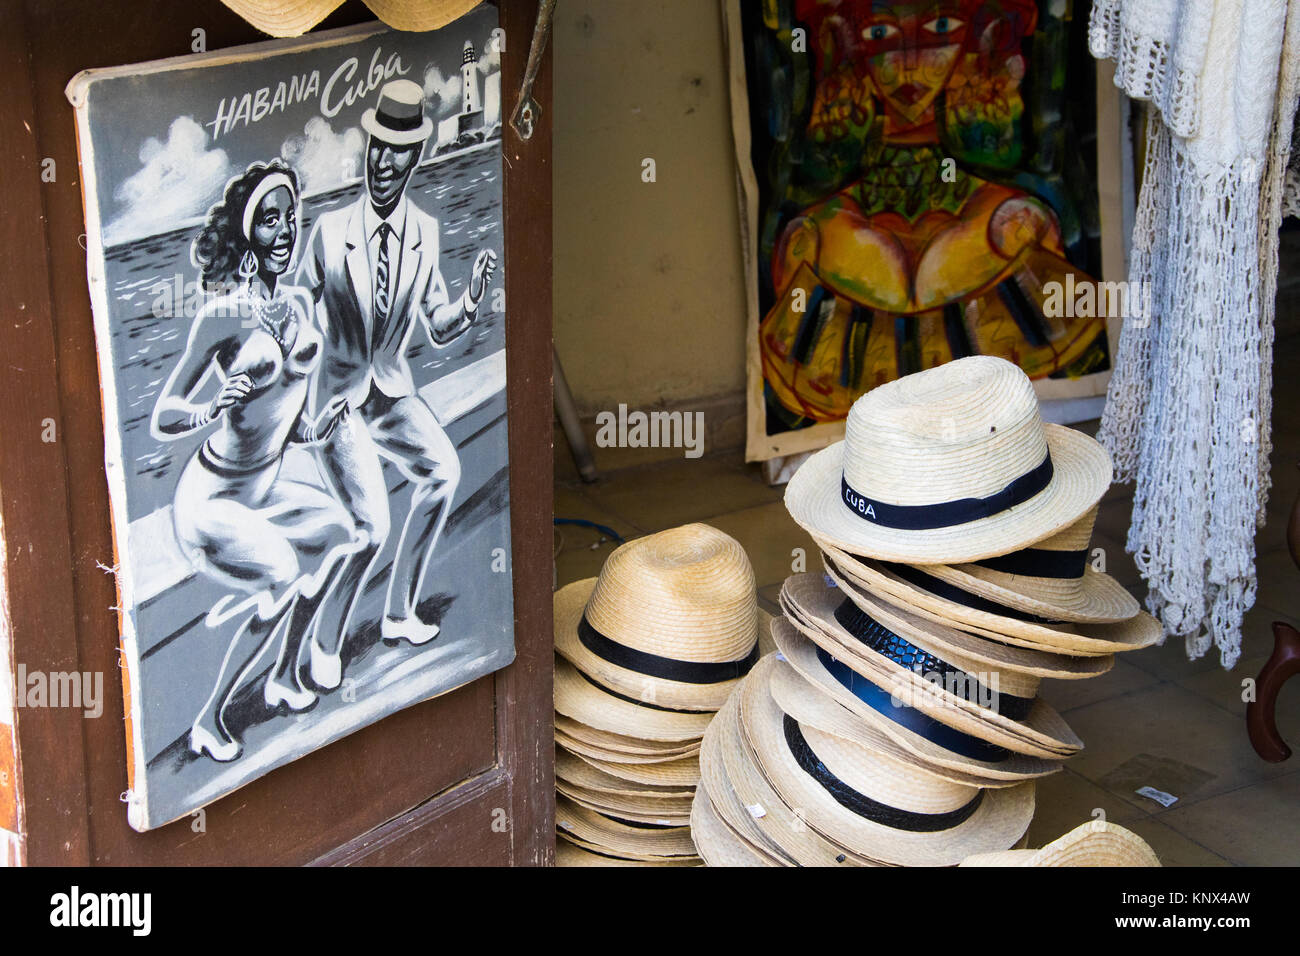 Souvenir hats in a shop in Havana, Cuba - Stock Image